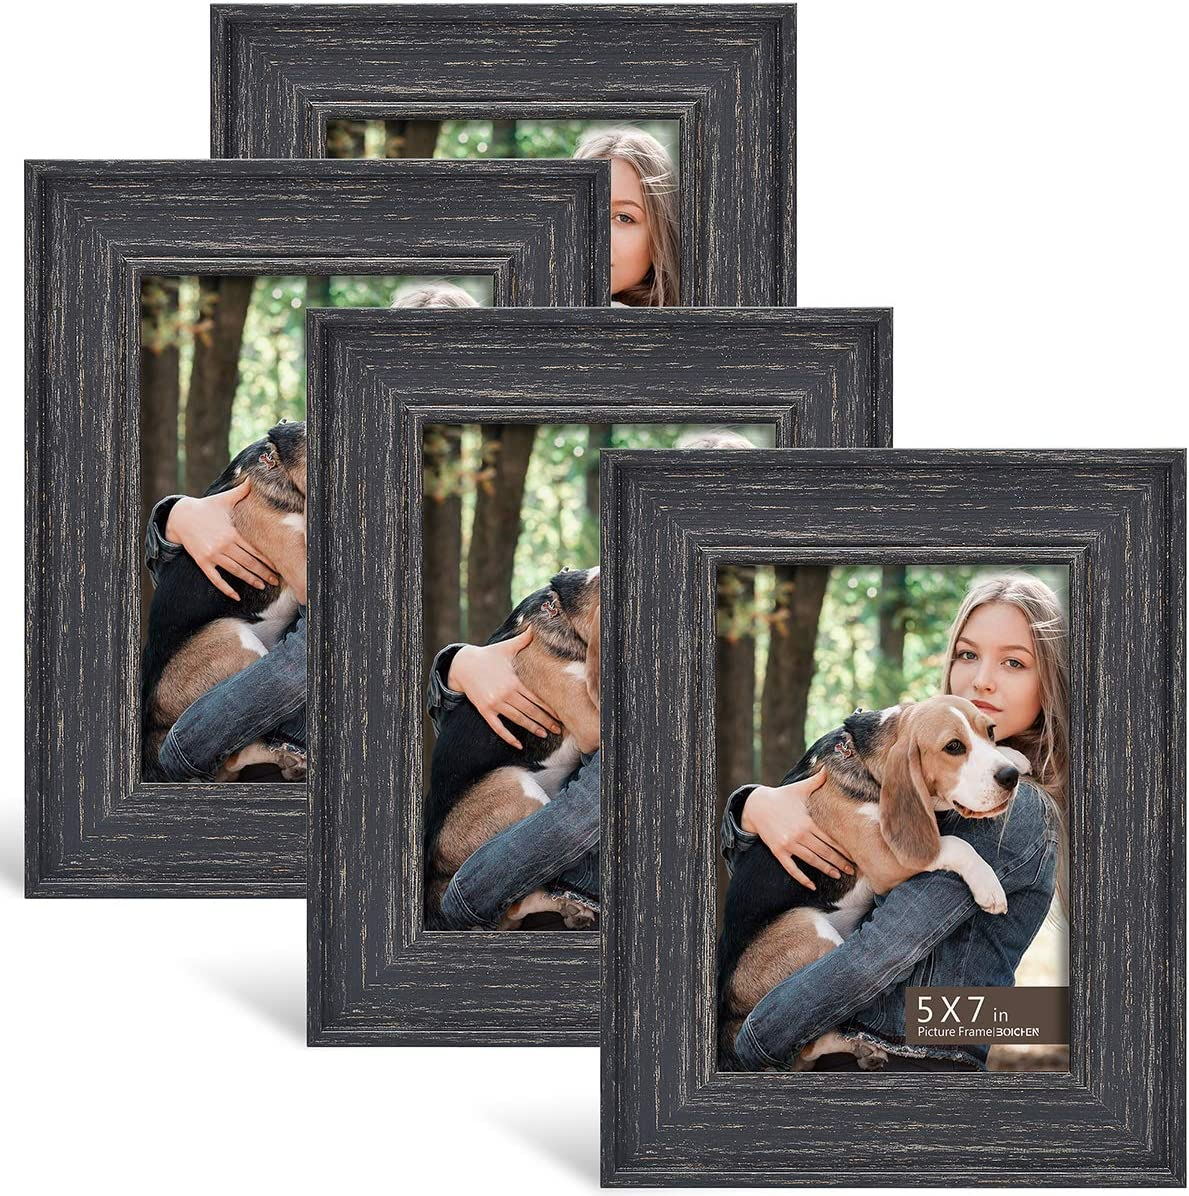 BOICHEN 5x7 Frame (4-Pack) - Picture Frames Rustic Black Farmhouse Photo Frame Set for Wall with Glass Cover Gilding Crafts Ready to Hang or Stand